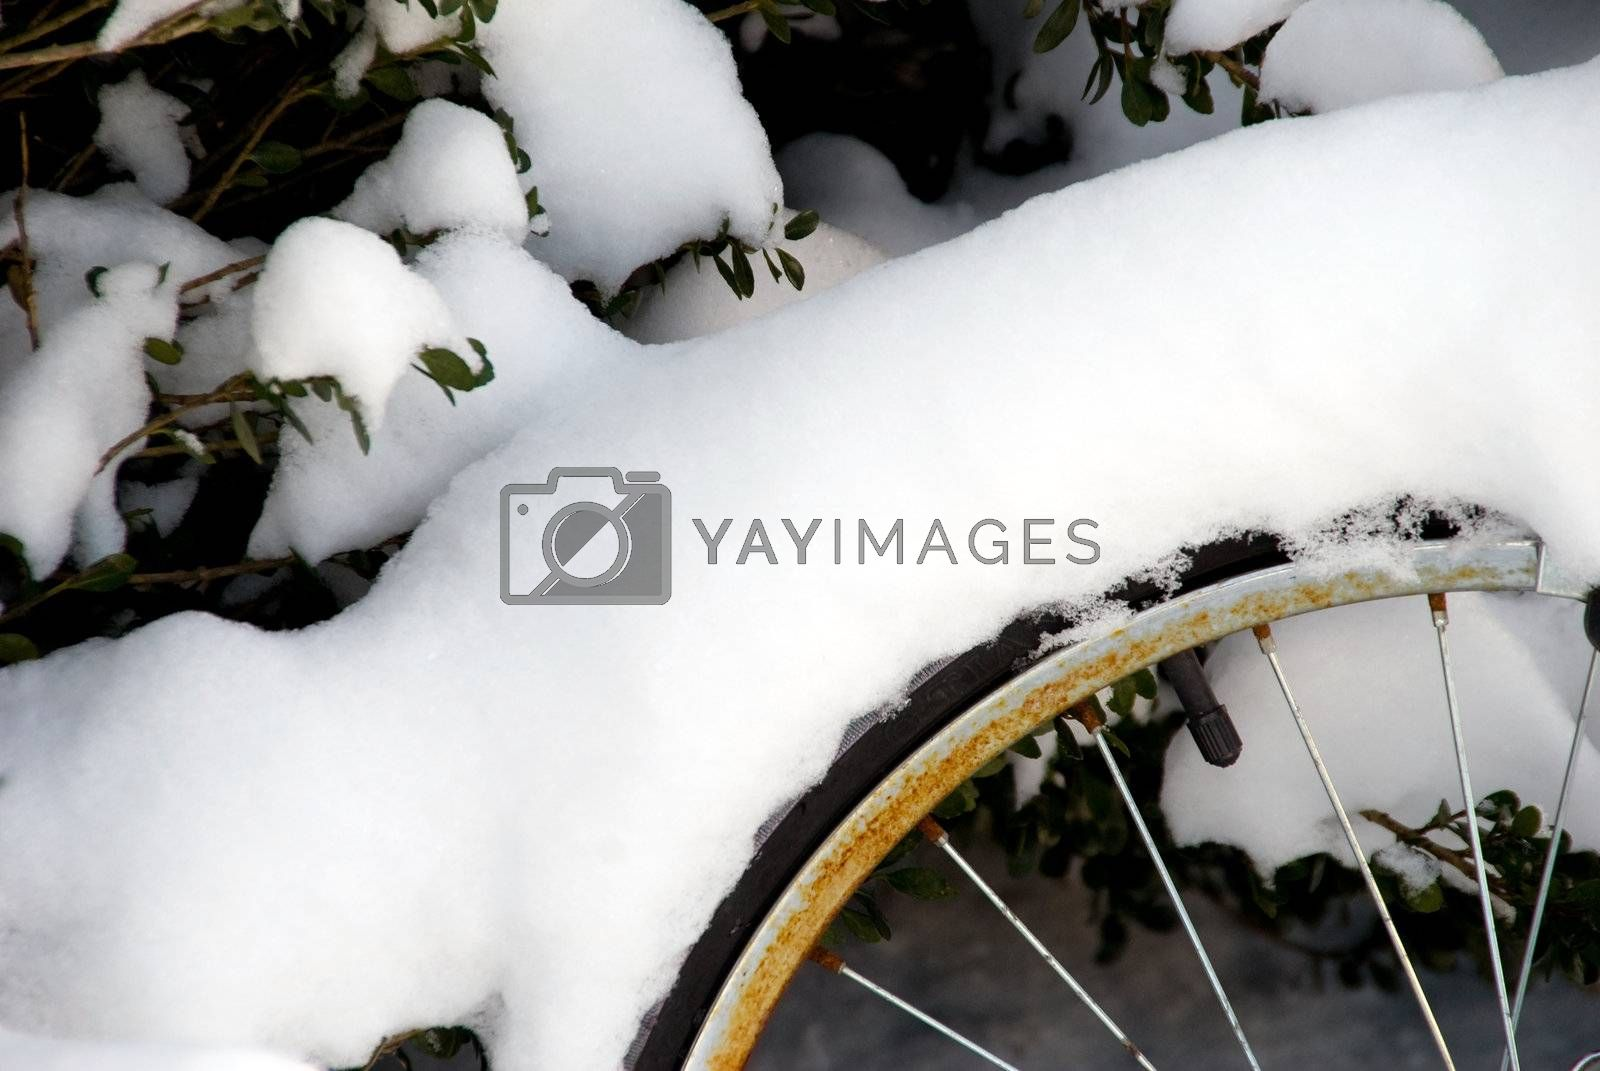 A bicycle wheel covered in fresh snow.